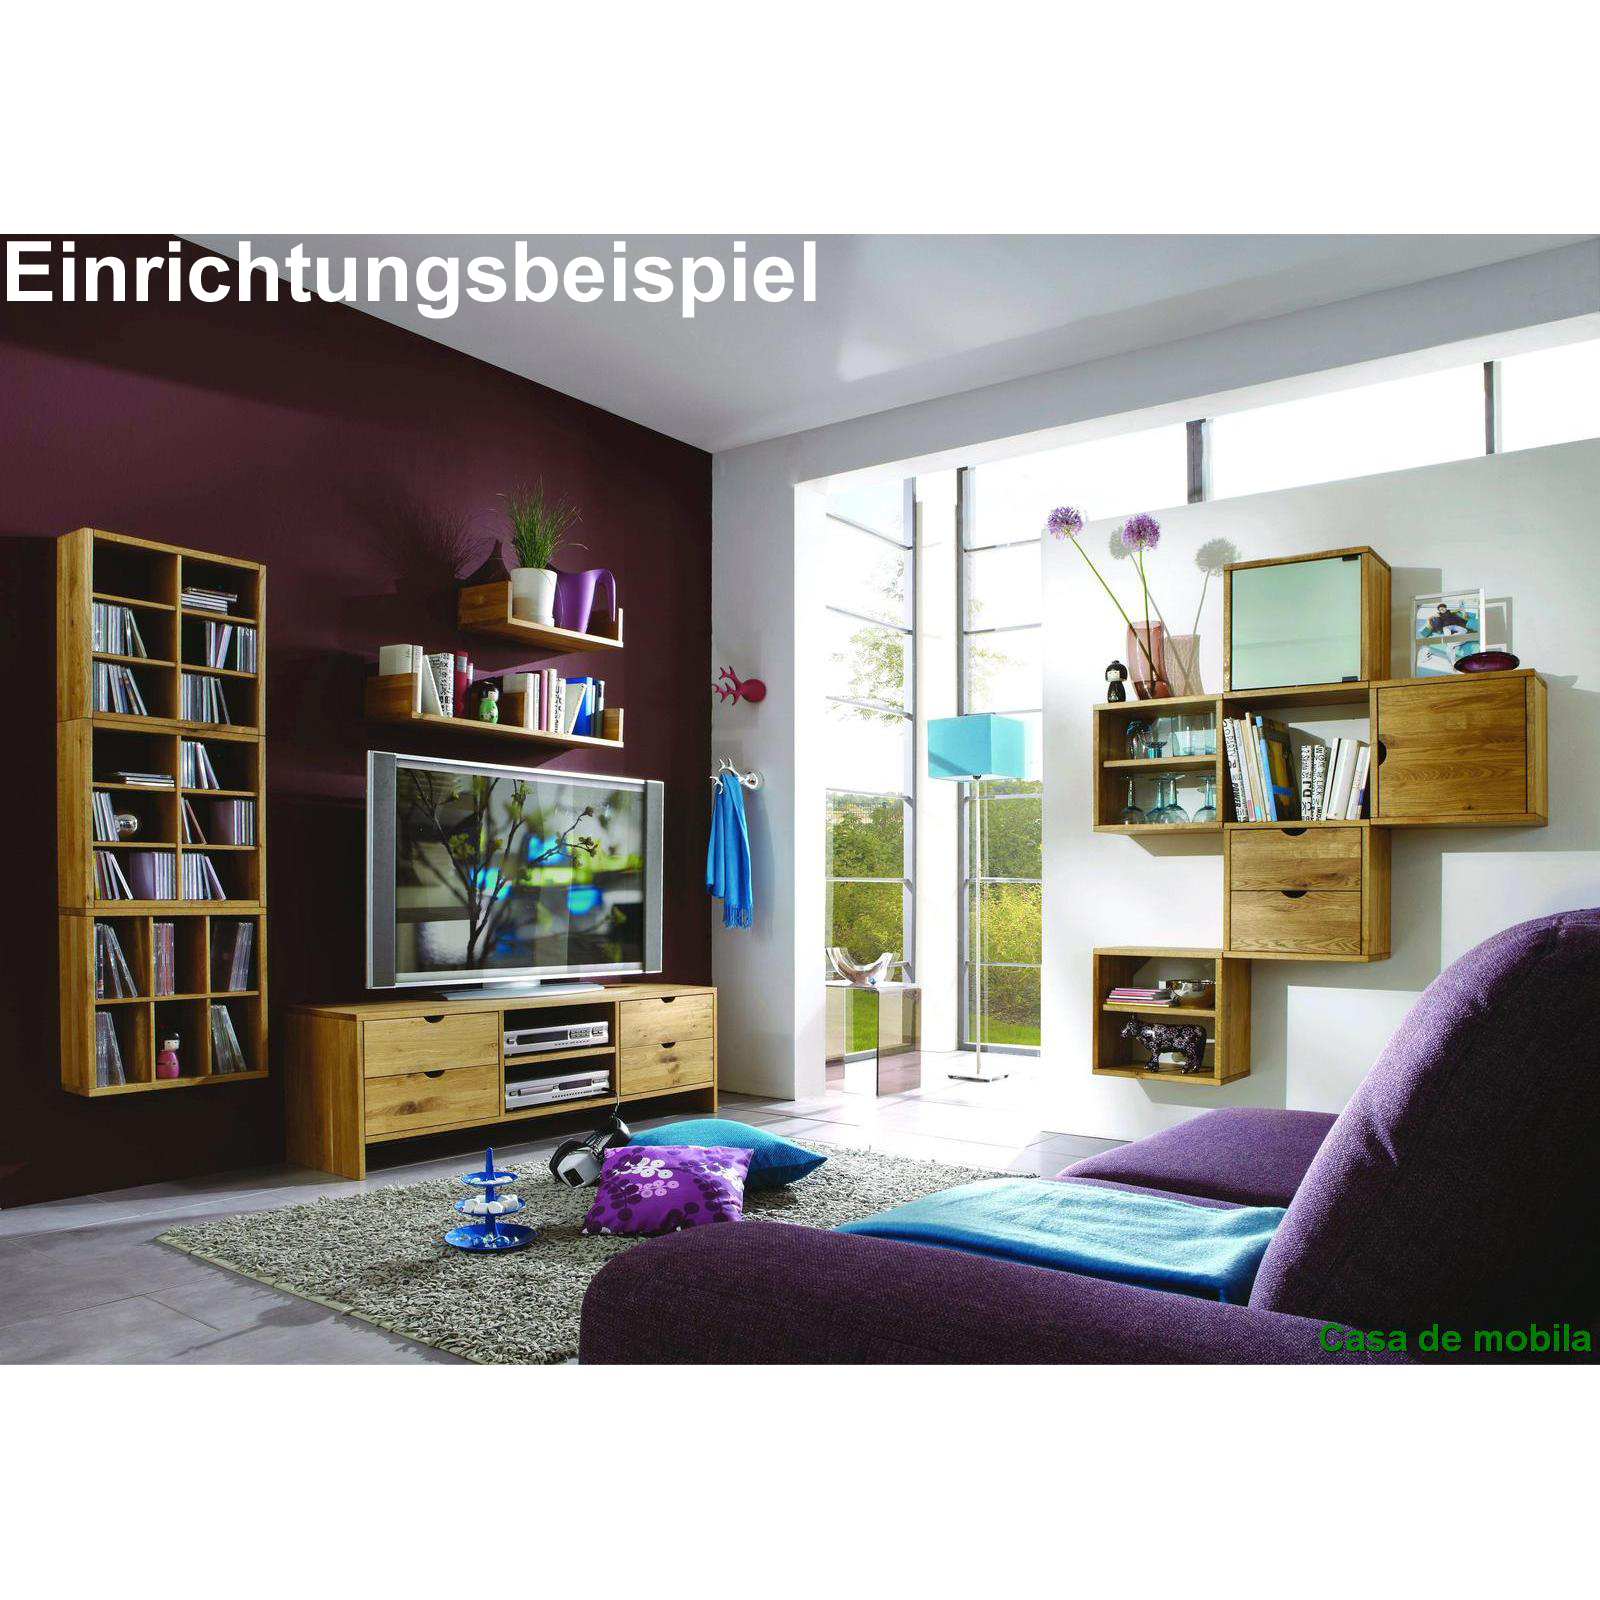 h ngeregal wandregal cd regal dvd b cherregal wildeiche massiv holz ge lt eiche ebay. Black Bedroom Furniture Sets. Home Design Ideas